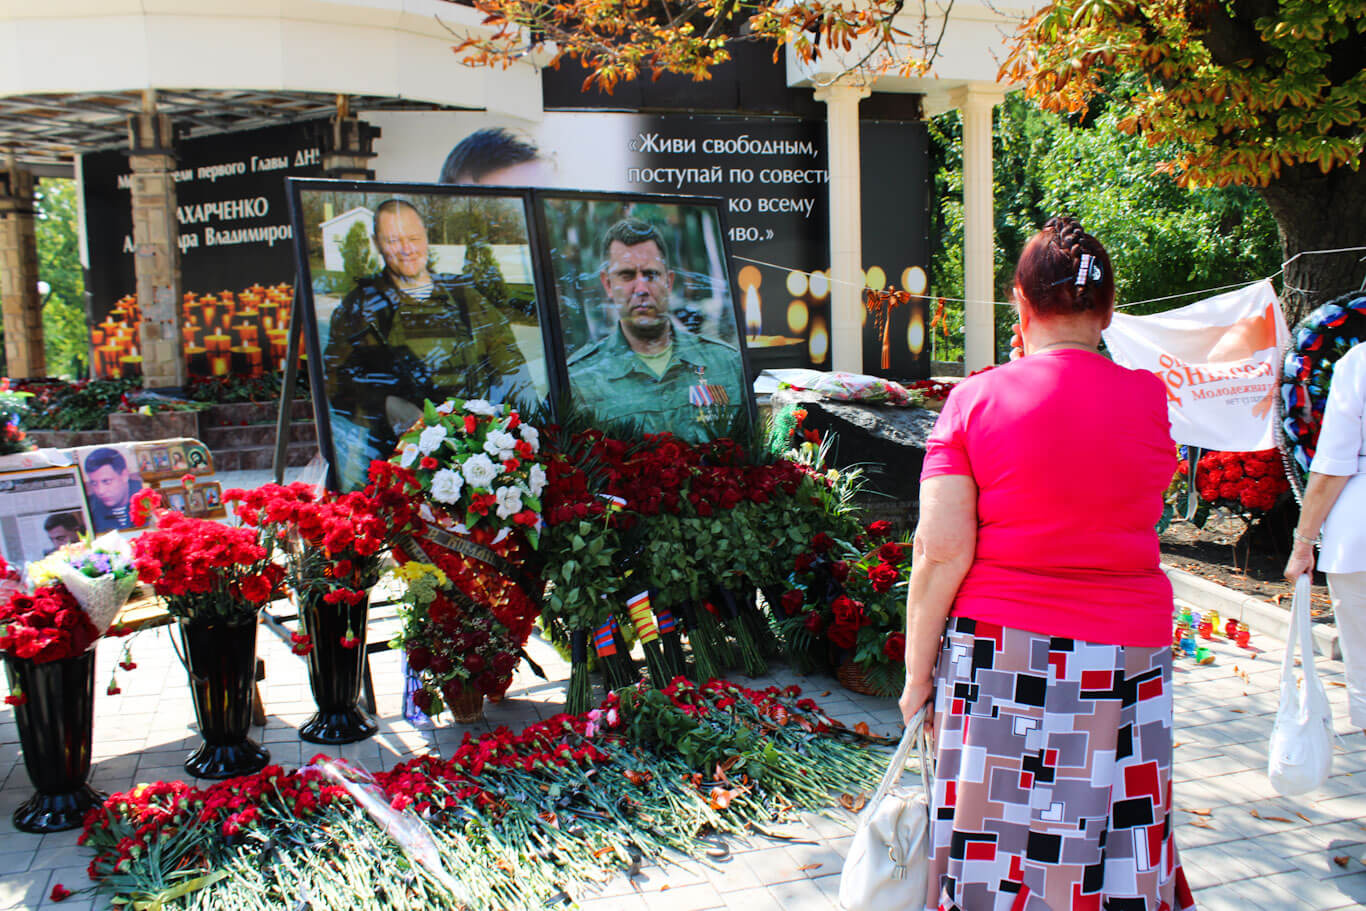 Donbass War Diary memorial